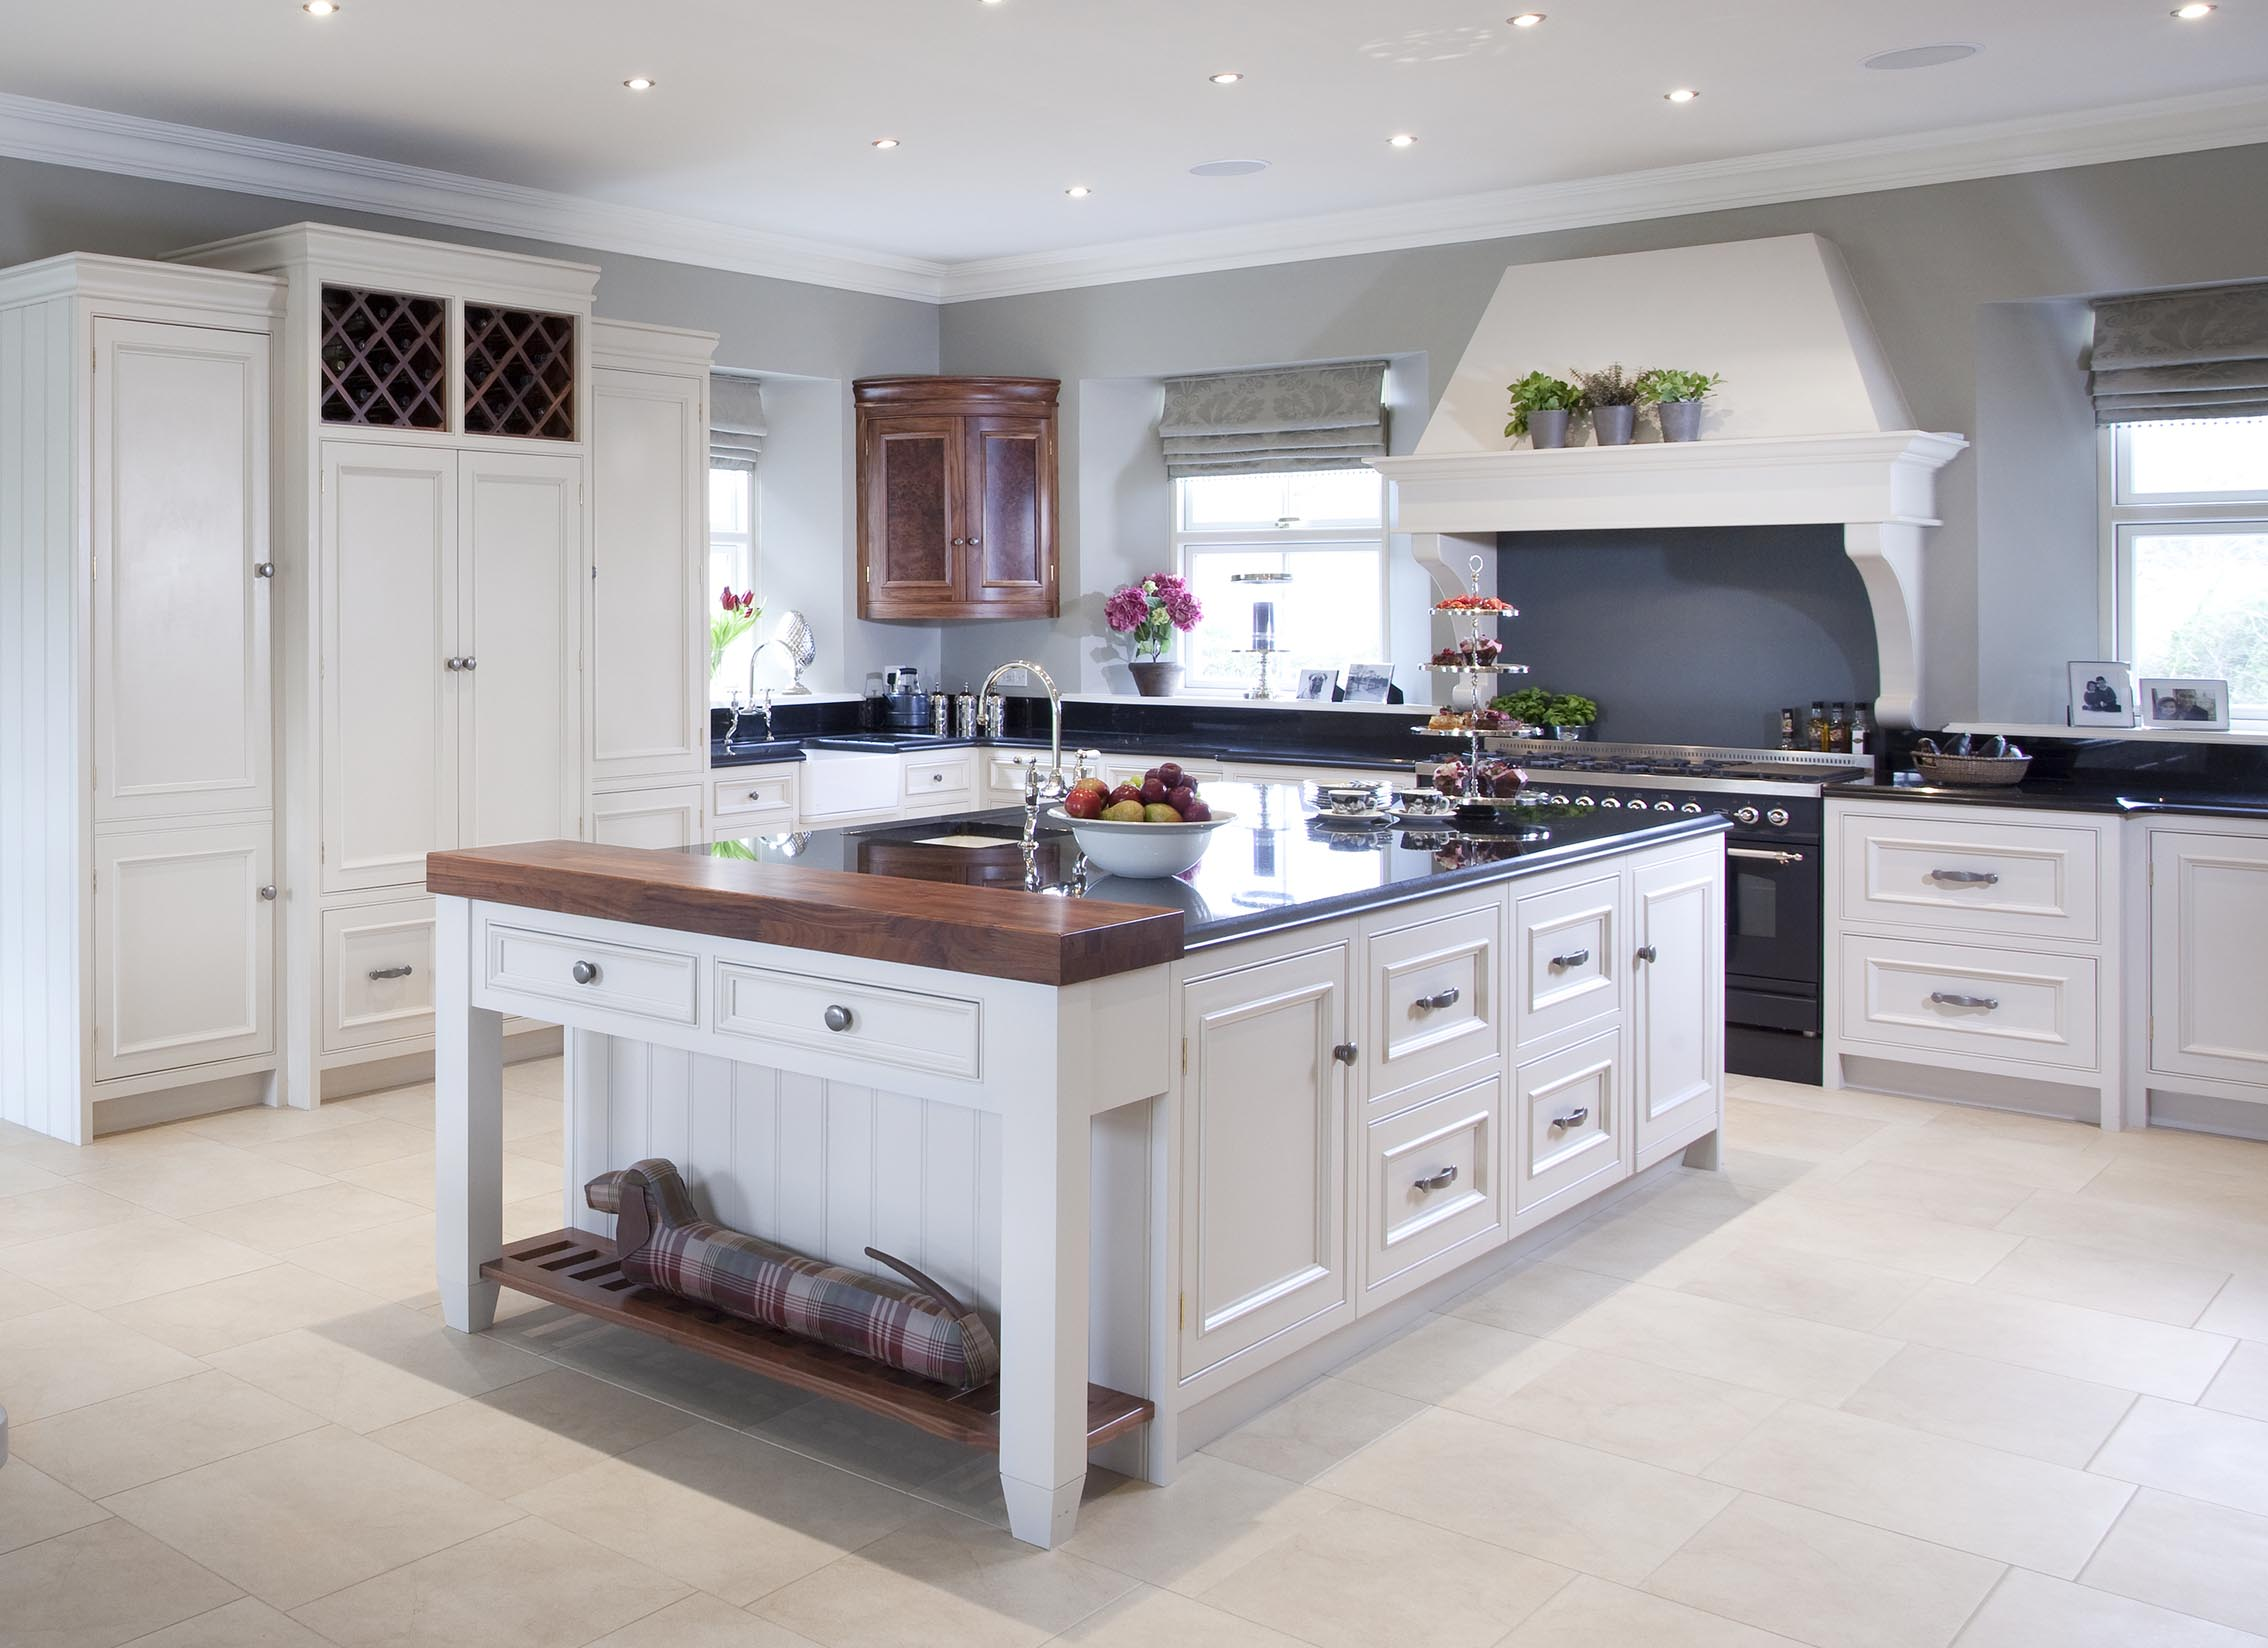 Gallery Of Handmade Kitchens Dublin Belfast And Dungannon Ireland